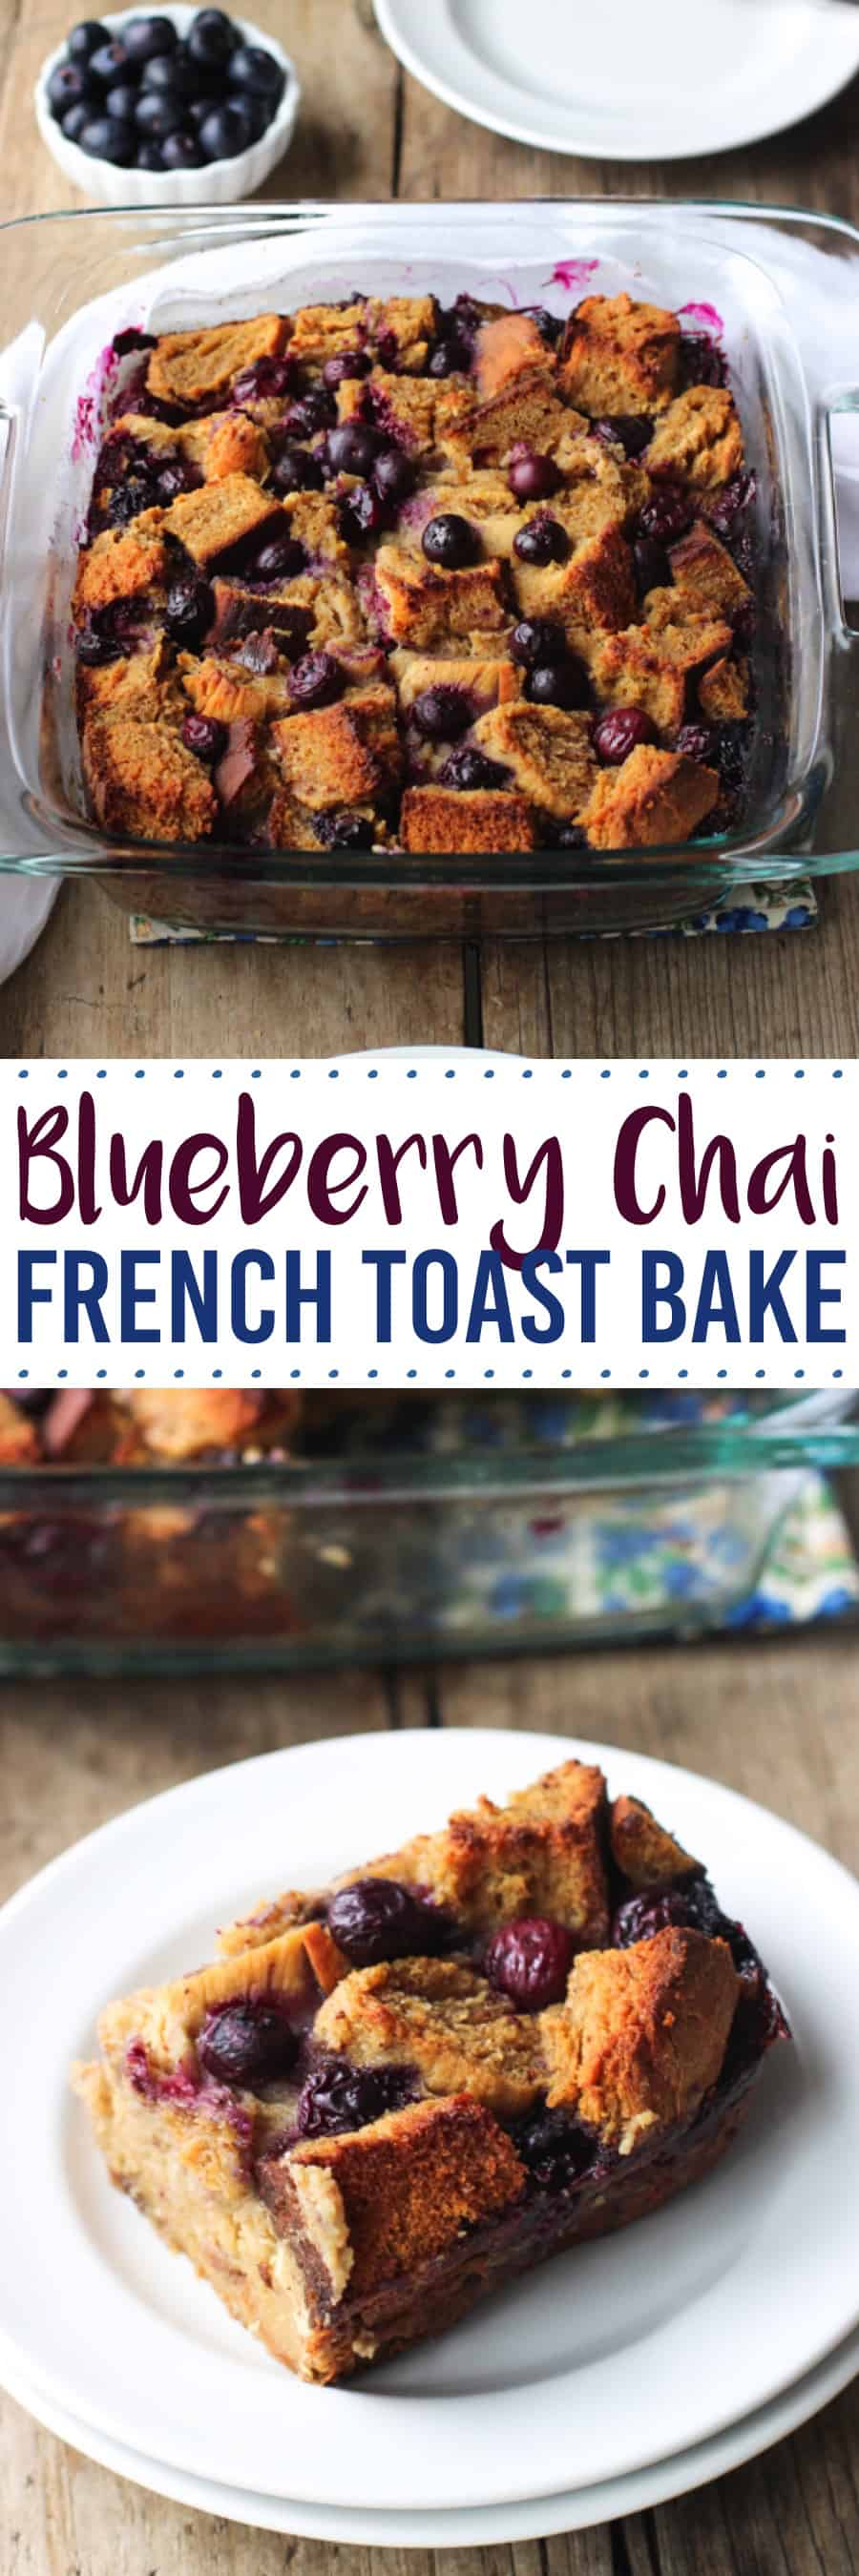 This whole wheat chai blueberry french toast bake is an easy and flavorful way to feed a crowd! Blueberries, chai spices, and maple syrup are bursting throughout this easy make-ahead (or not!) breakfast bake. Includes an easy recipe for whole wheat bread or you can use challah for a time saving shortcut.